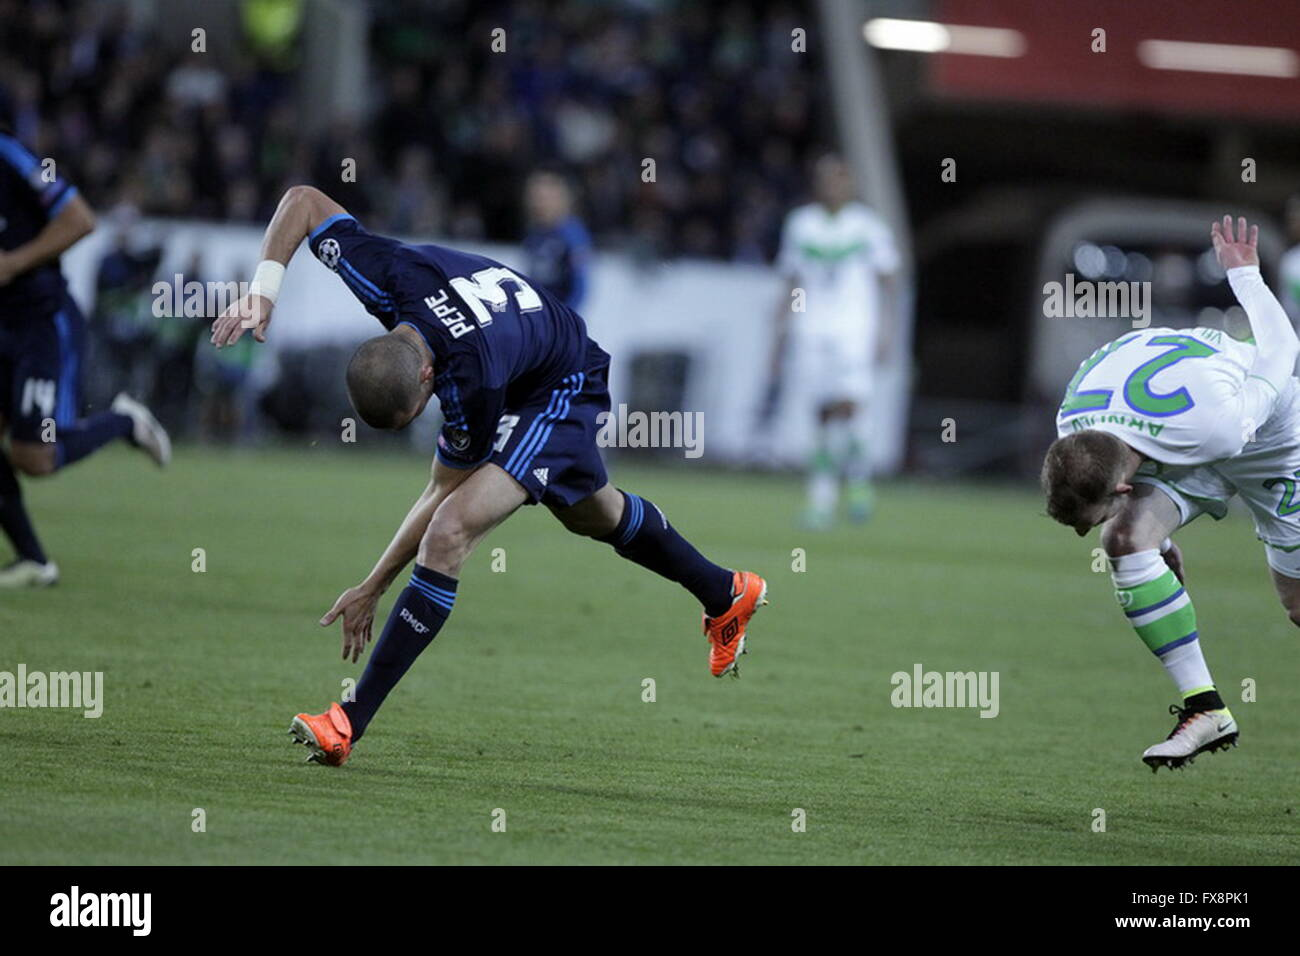 Pépé in action during the league champion Wolfsburg match - Real Madrid © Laurent Lairys Agence Locevaphotos - Stock Image